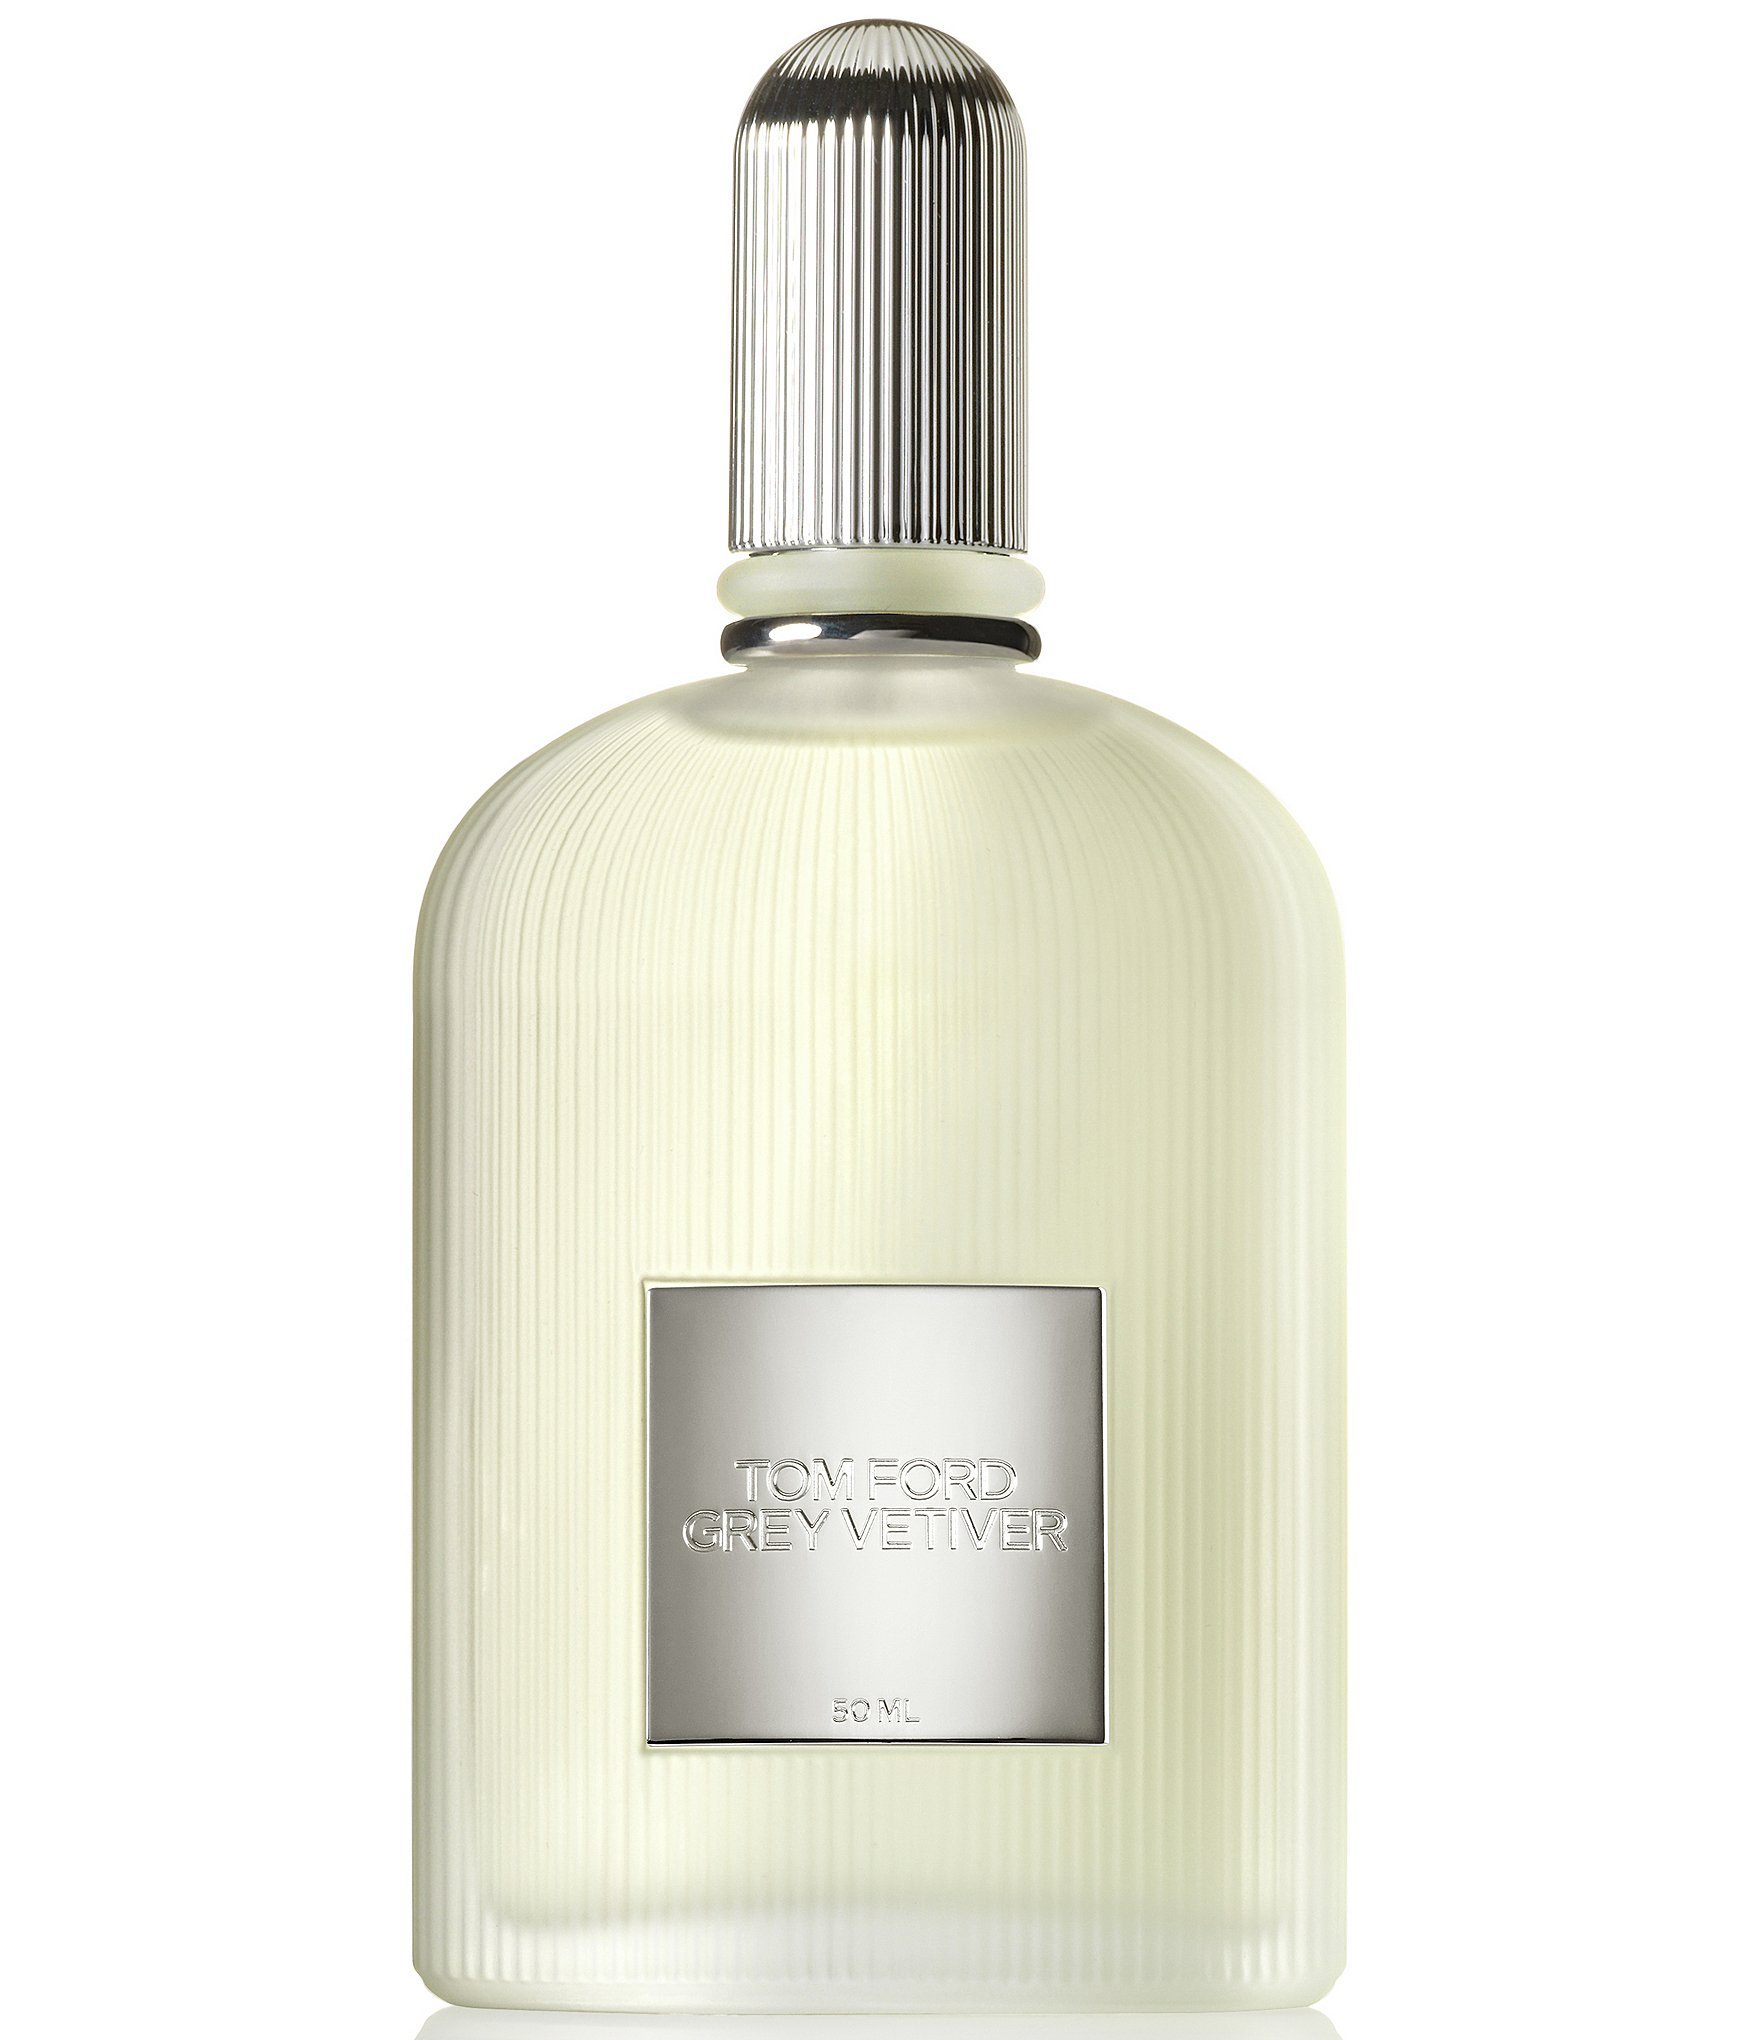 Tom Ford Grey Vetiver Eau De Parfum Dillards